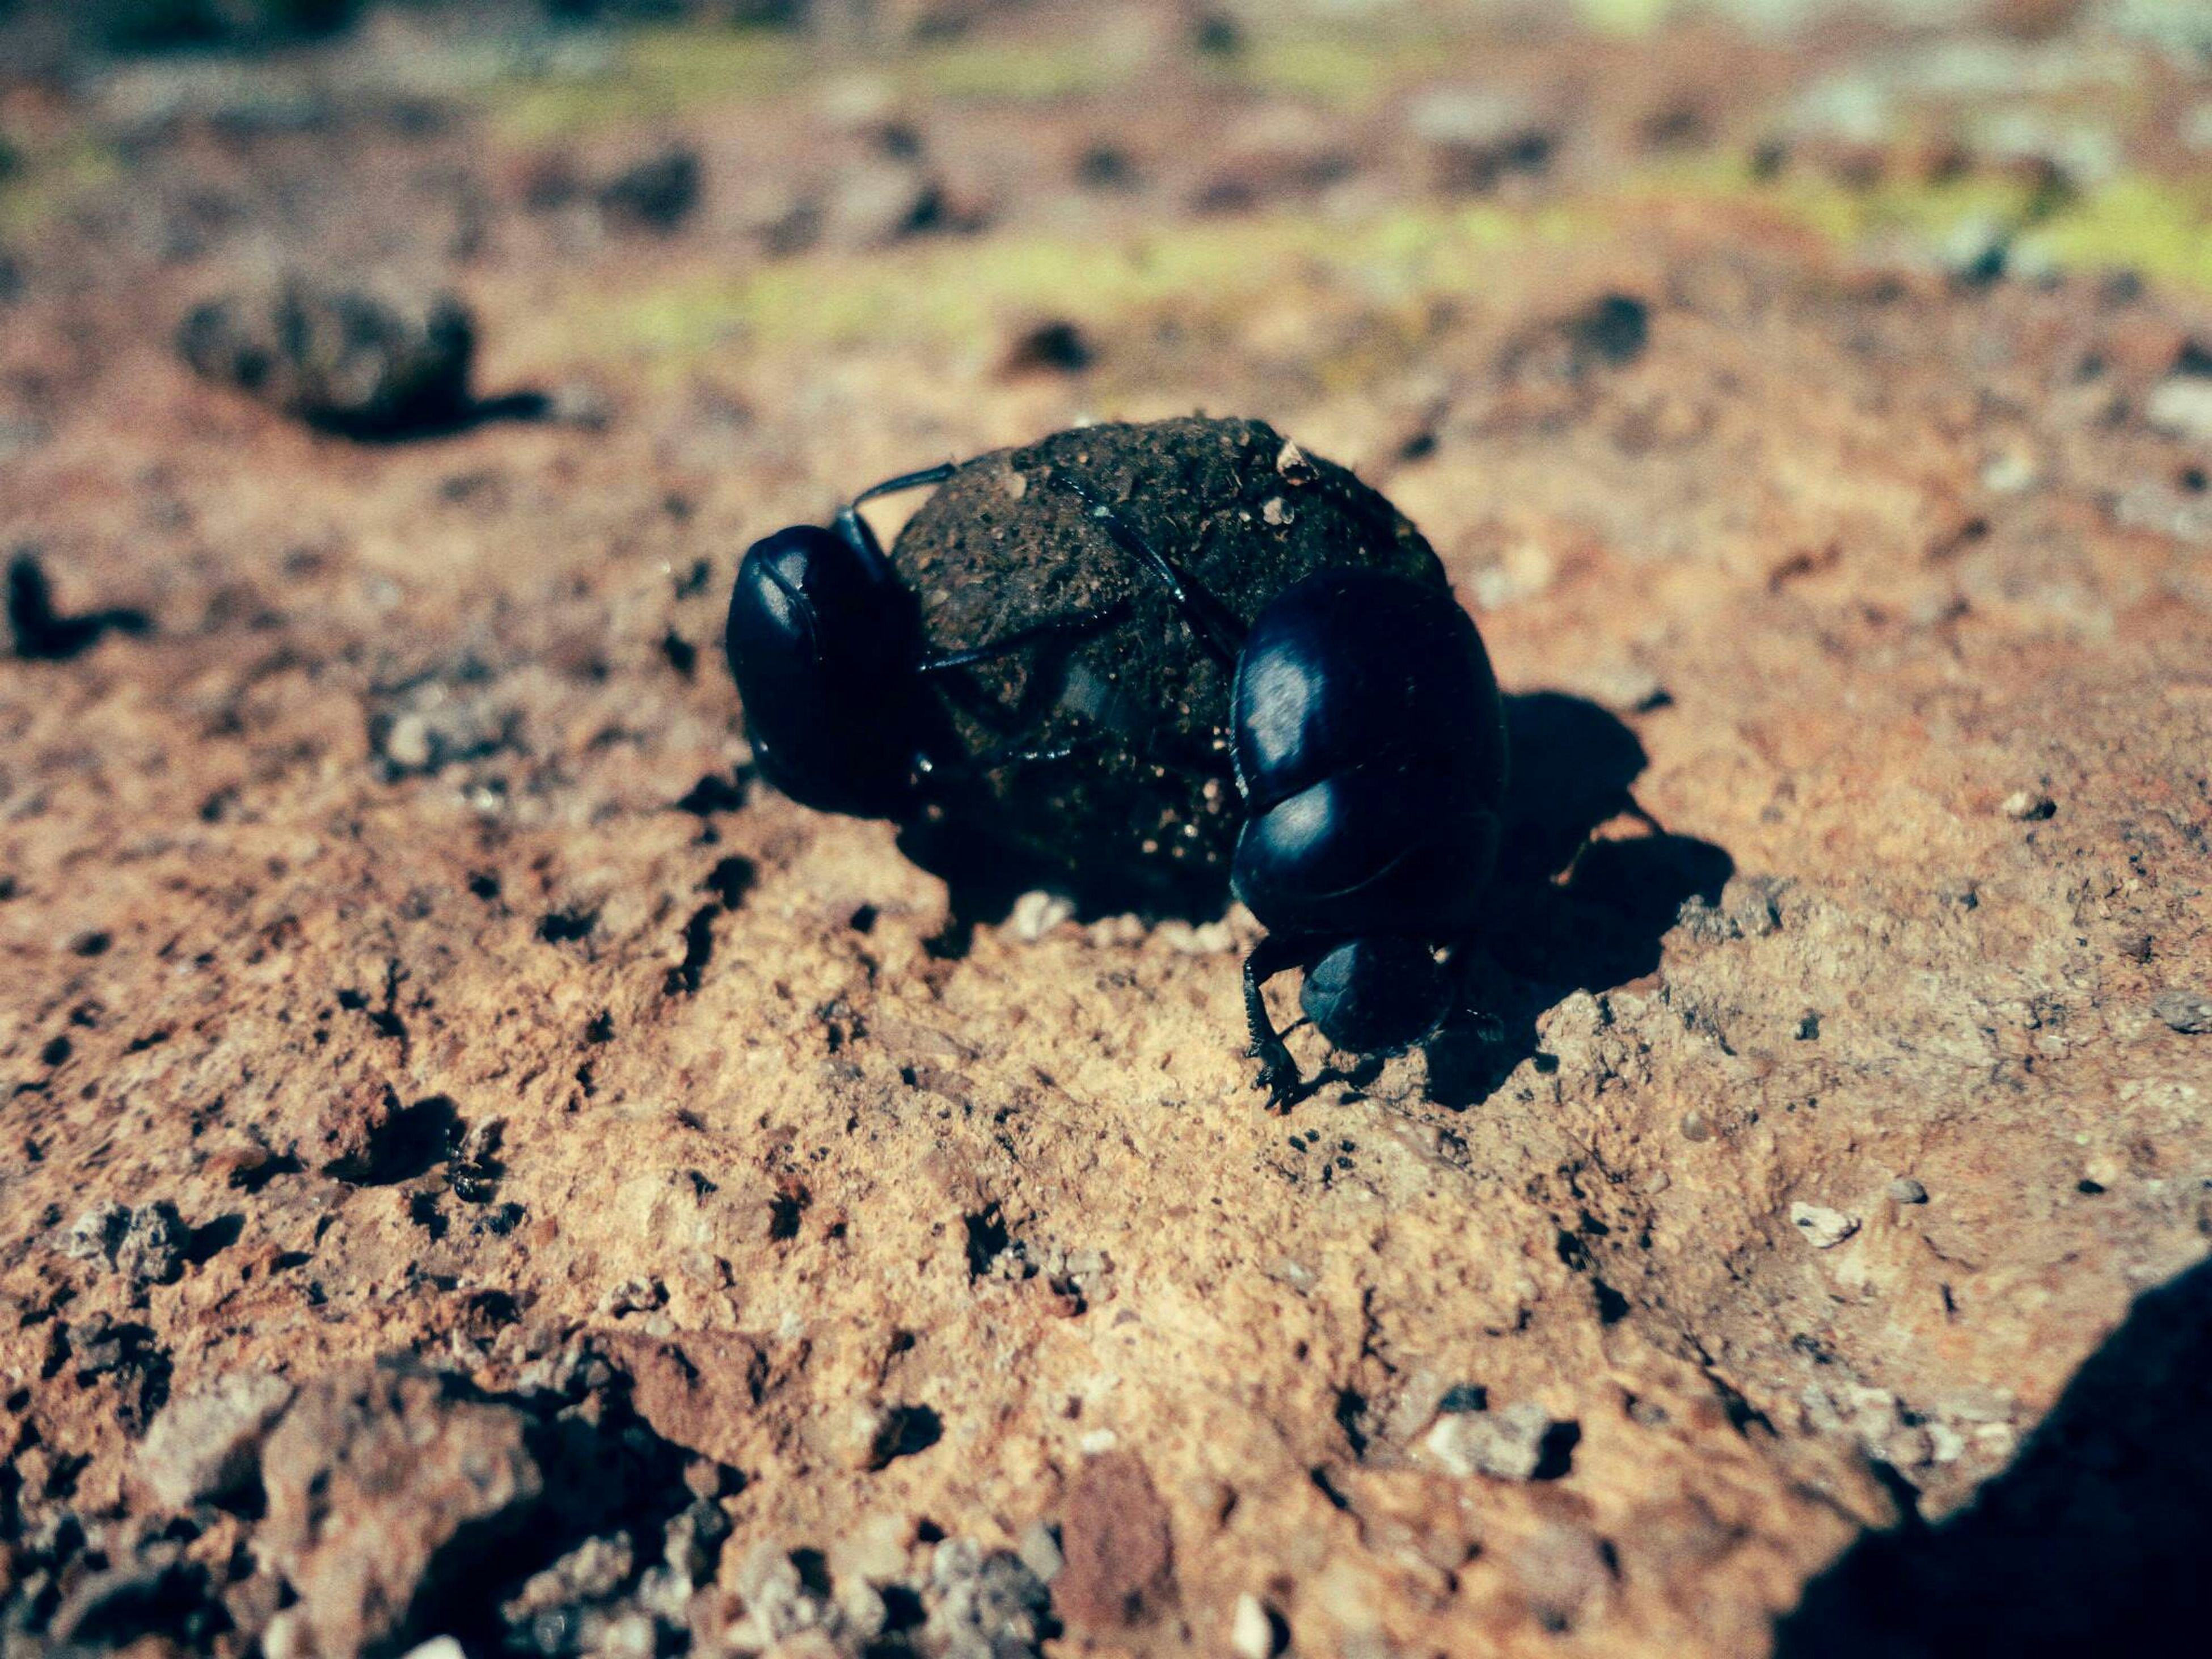 close-up, one animal, animal themes, insect, selective focus, high angle view, nature, animal shell, wildlife, sand, rock - object, day, ground, animals in the wild, focus on foreground, stone - object, outdoors, no people, beach, field